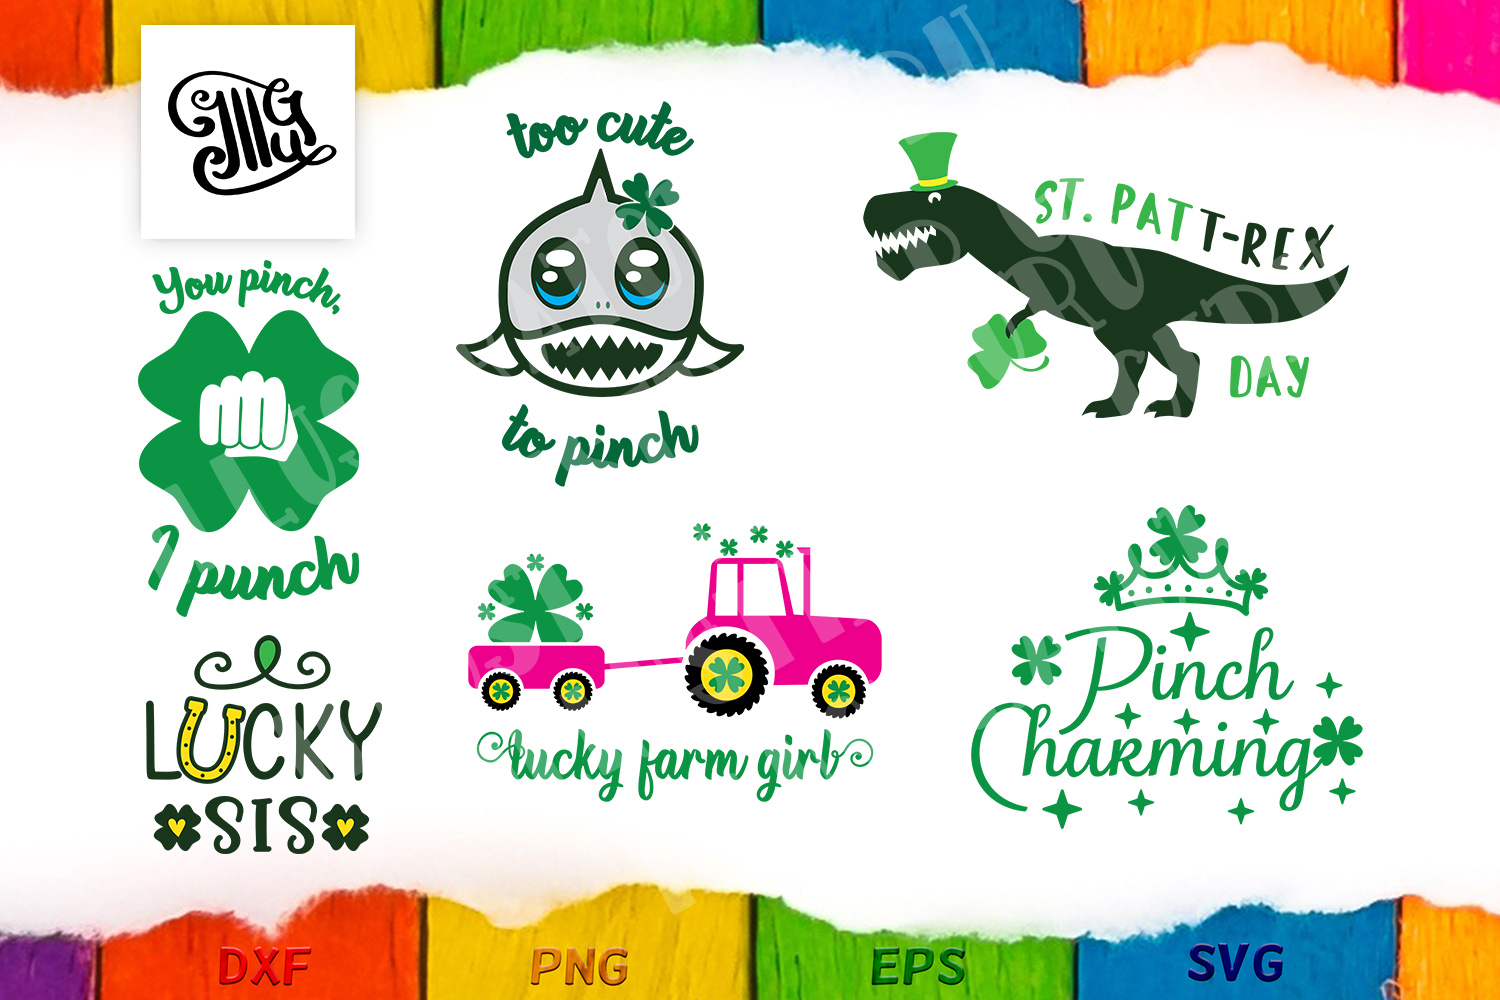 Download Free St Patrick S Day Bundle 13 Designs Graphic By Illustrator Guru for Cricut Explore, Silhouette and other cutting machines.